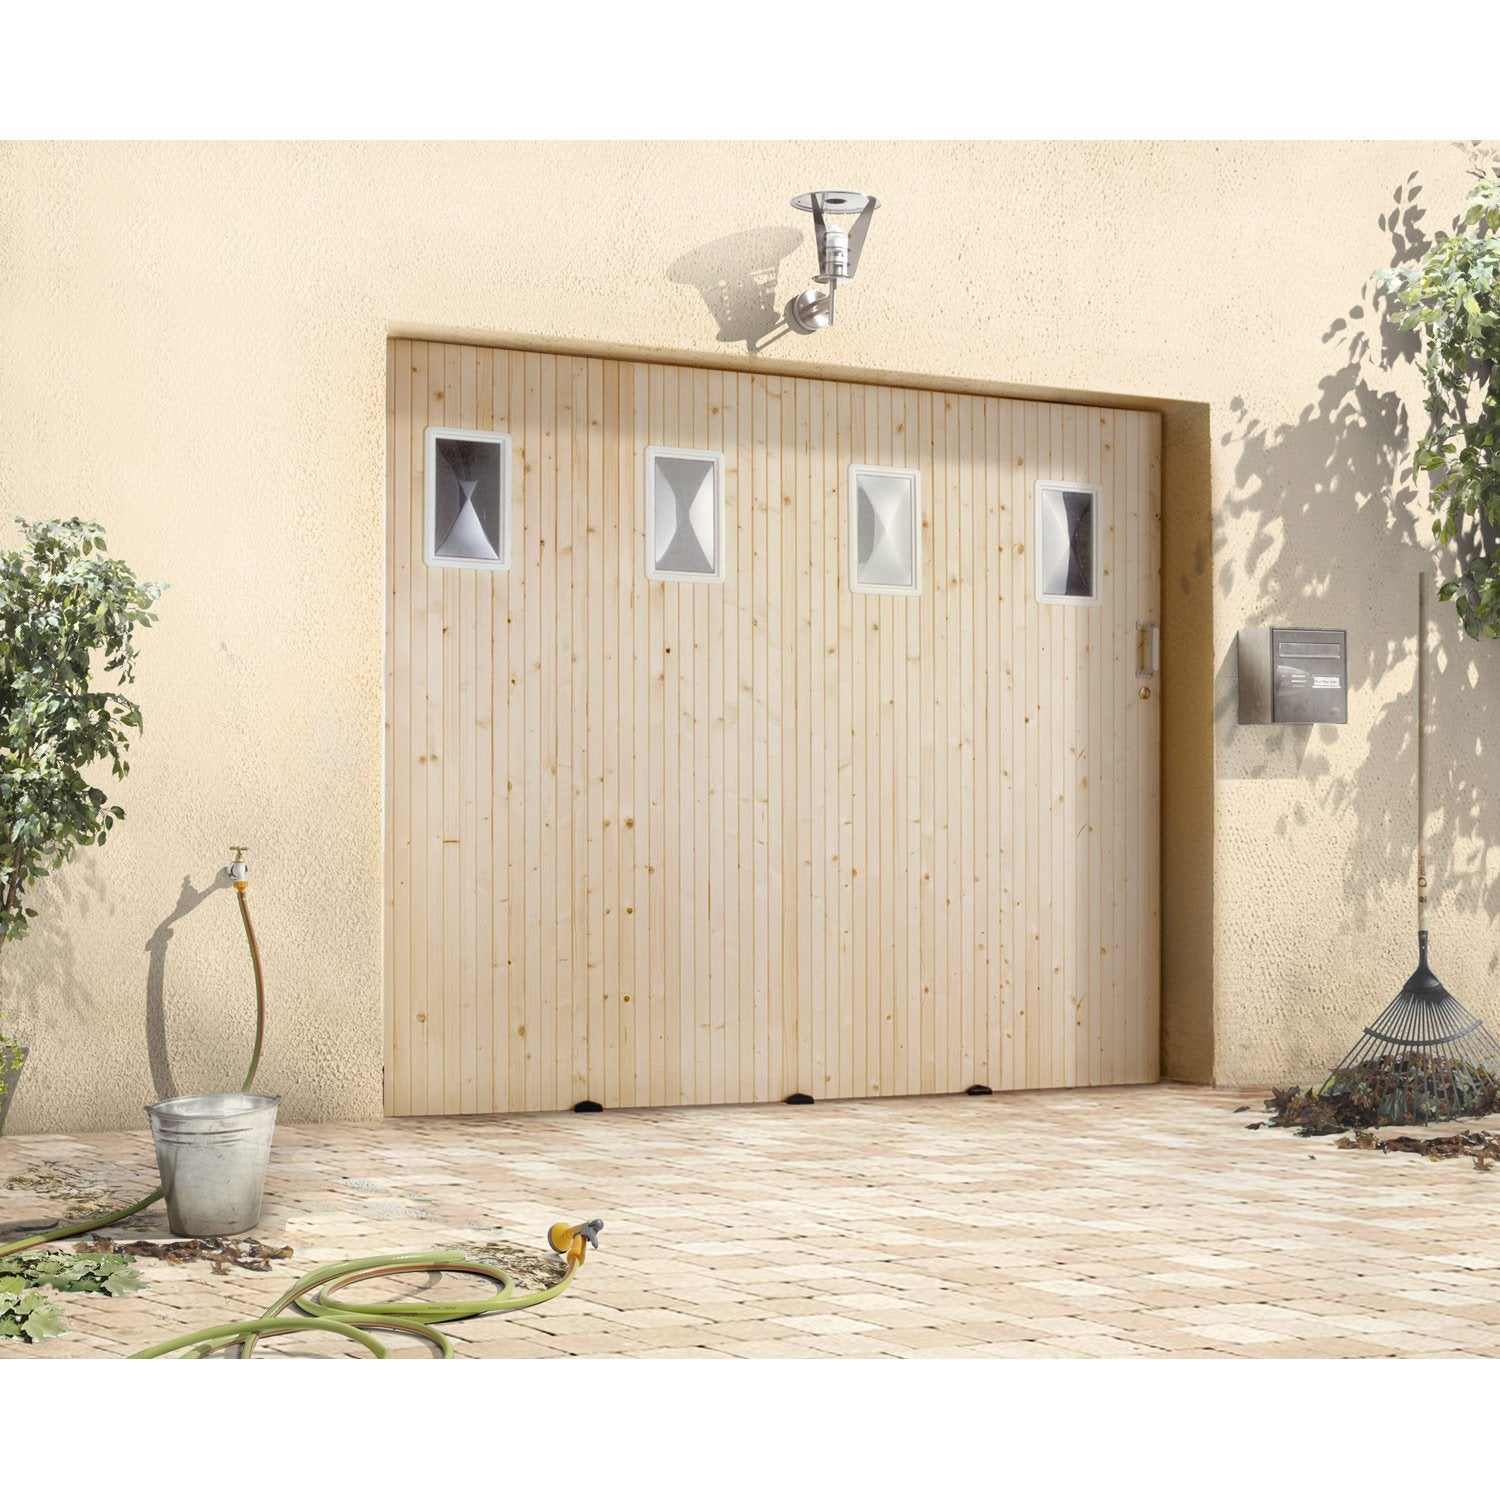 Garage en bois leroy merlin for Porte de garage coulissante bois